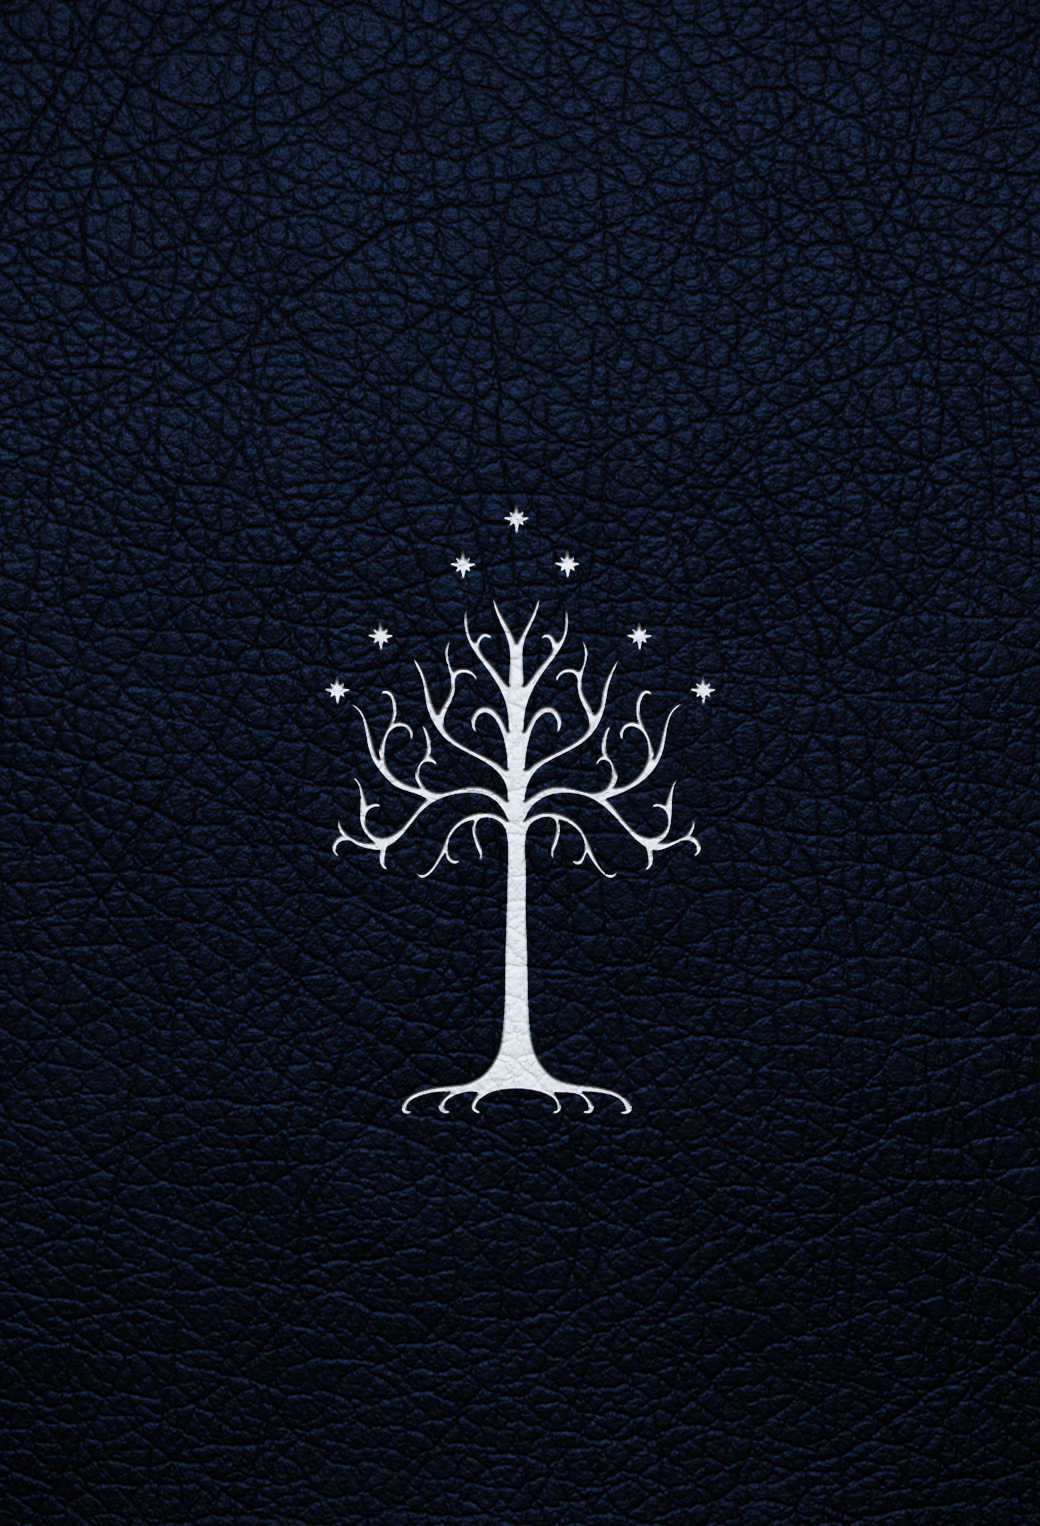 Hogwarts Crest Iphone Wallpaper Of gondor   iphone 5 for 1040x1526